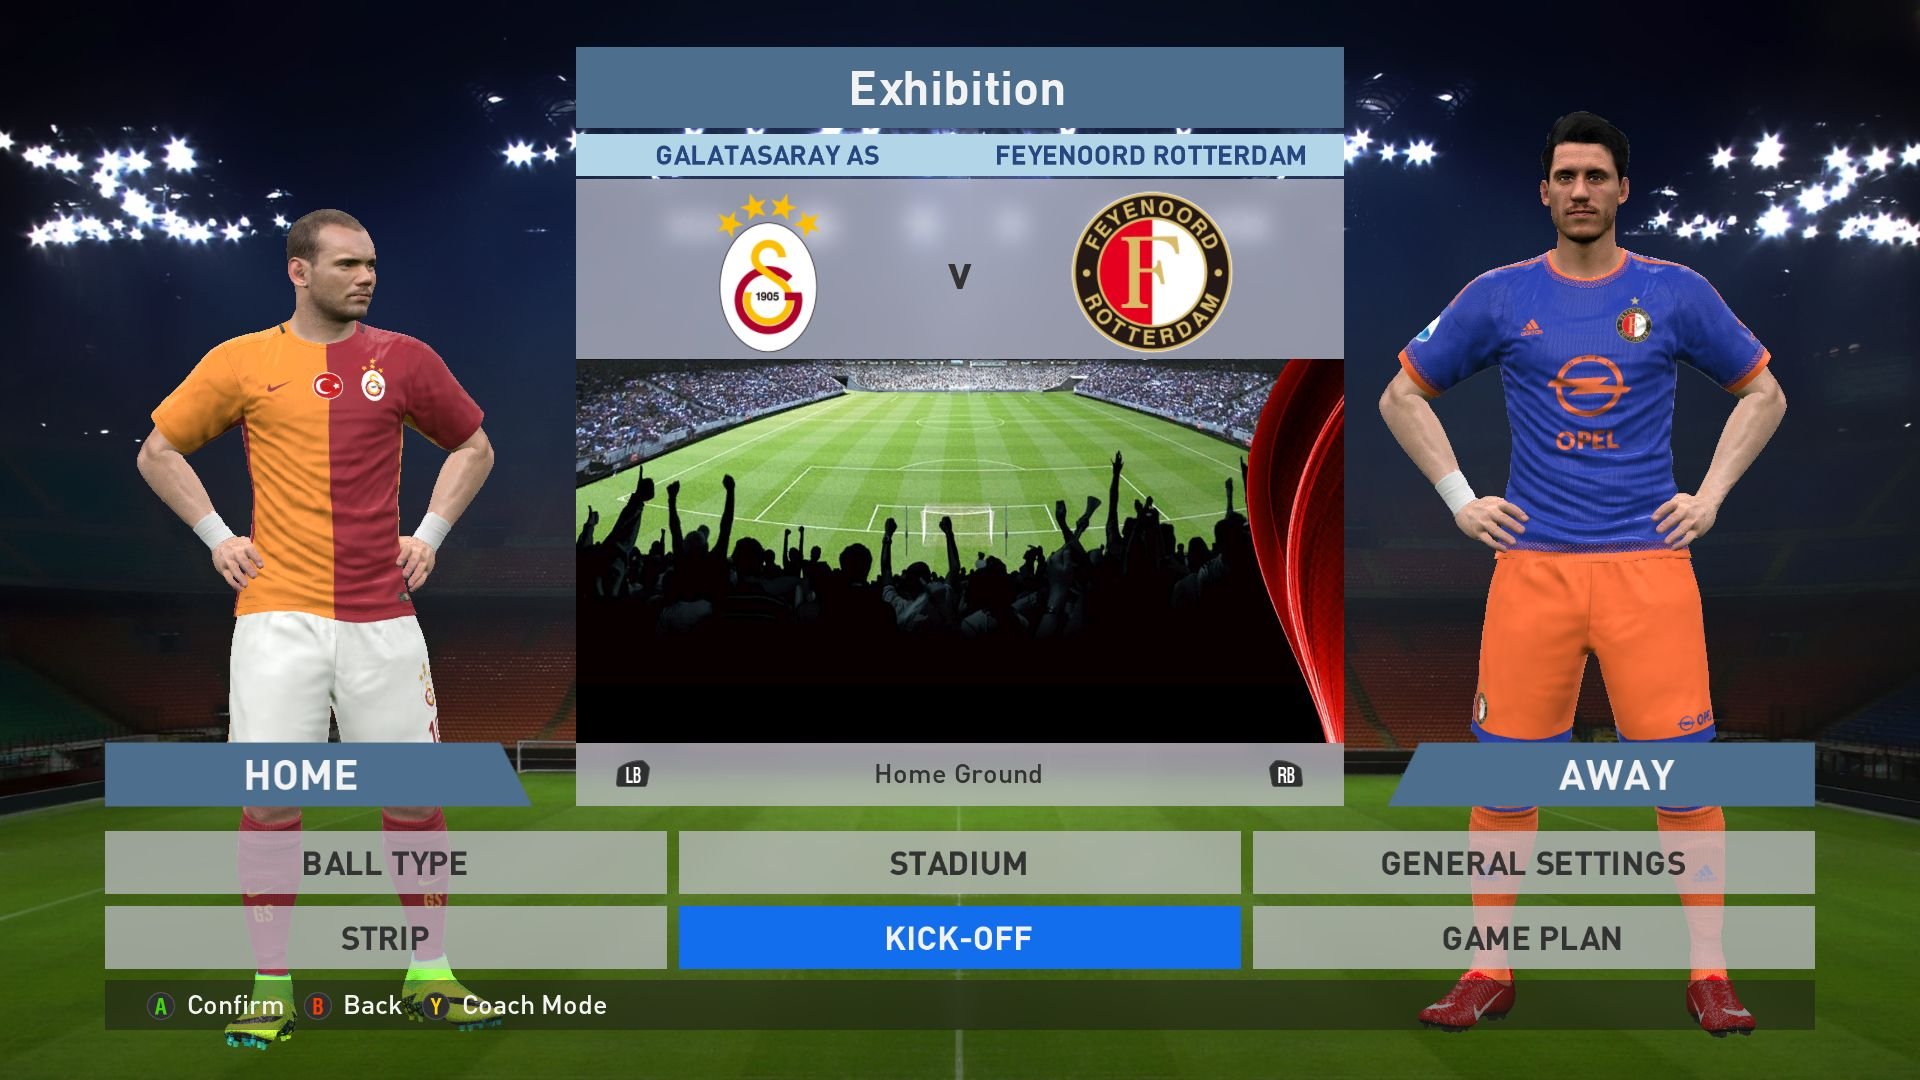 Galatasaray As Vs Feyenoord Rotterdam Turk Telekom Arena Pes 2016 Pro Evolution Soccer 2016 Konami Pc Gameplay Pes